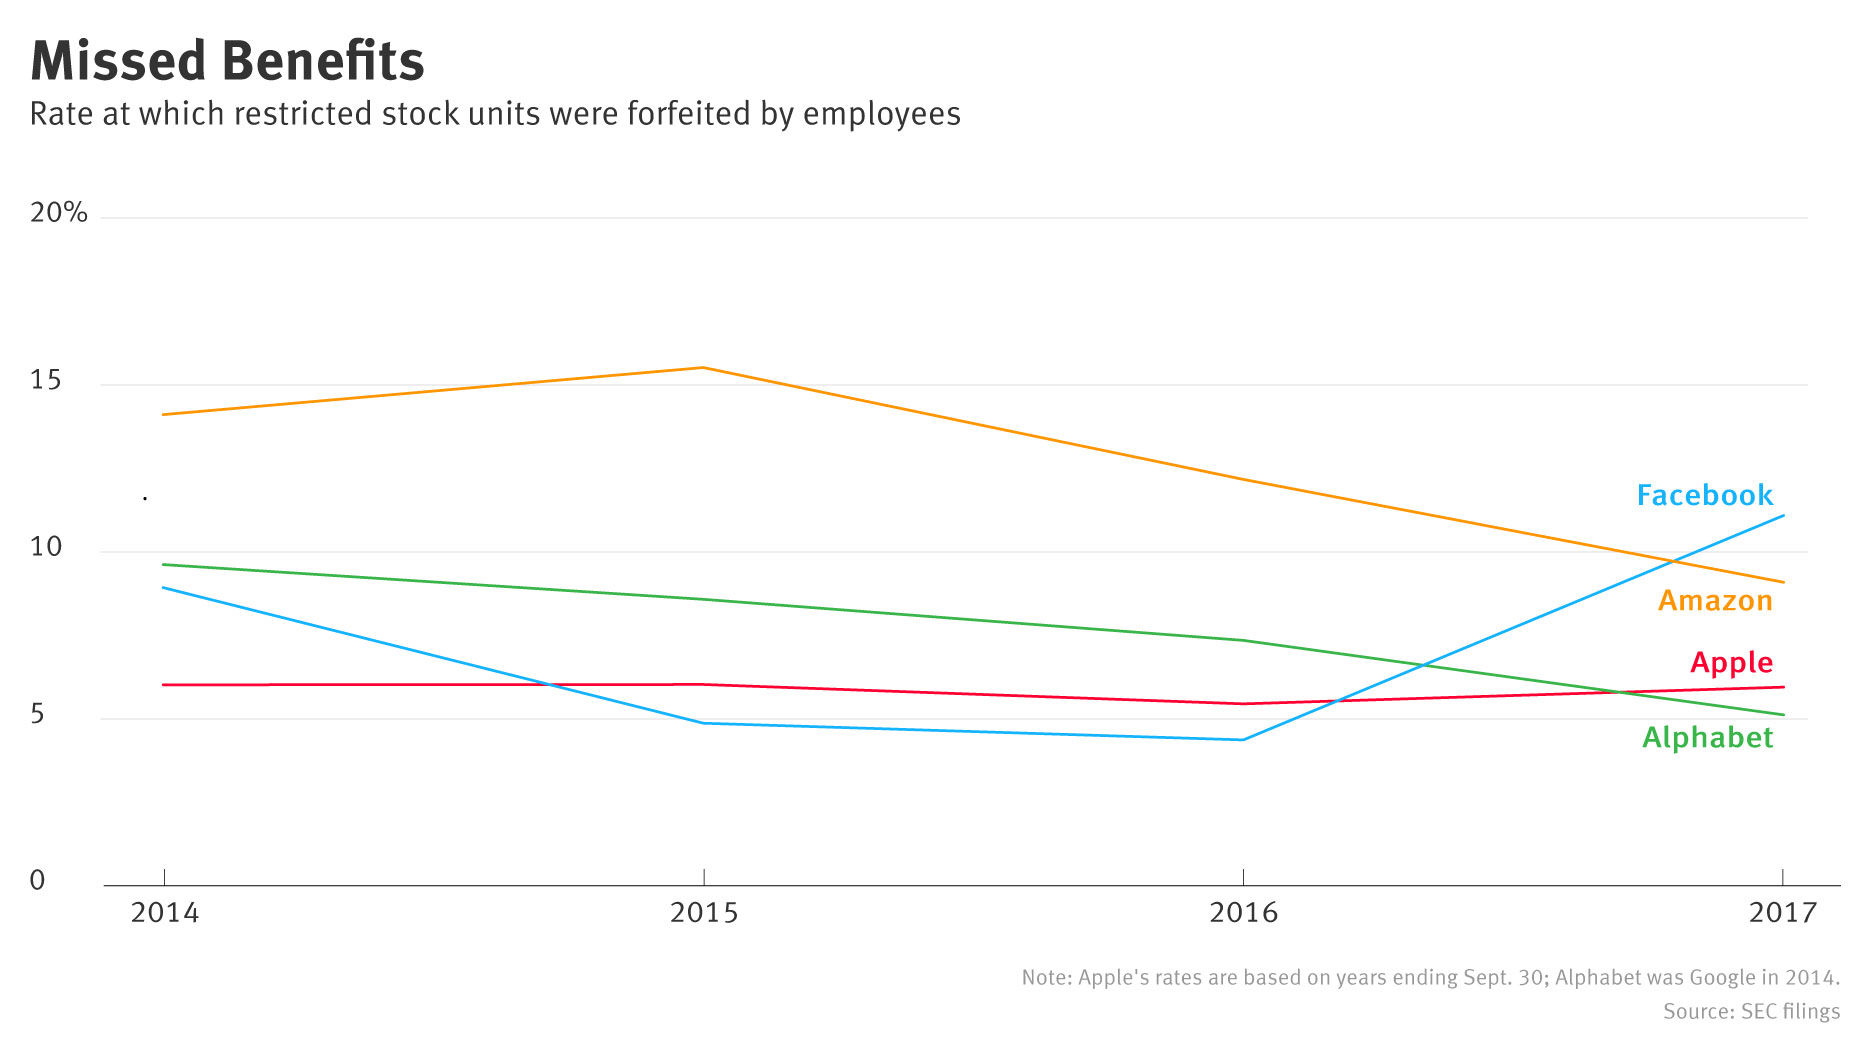 Amazon Employees Forfeit Stock Awards at Higher Rates — The Information